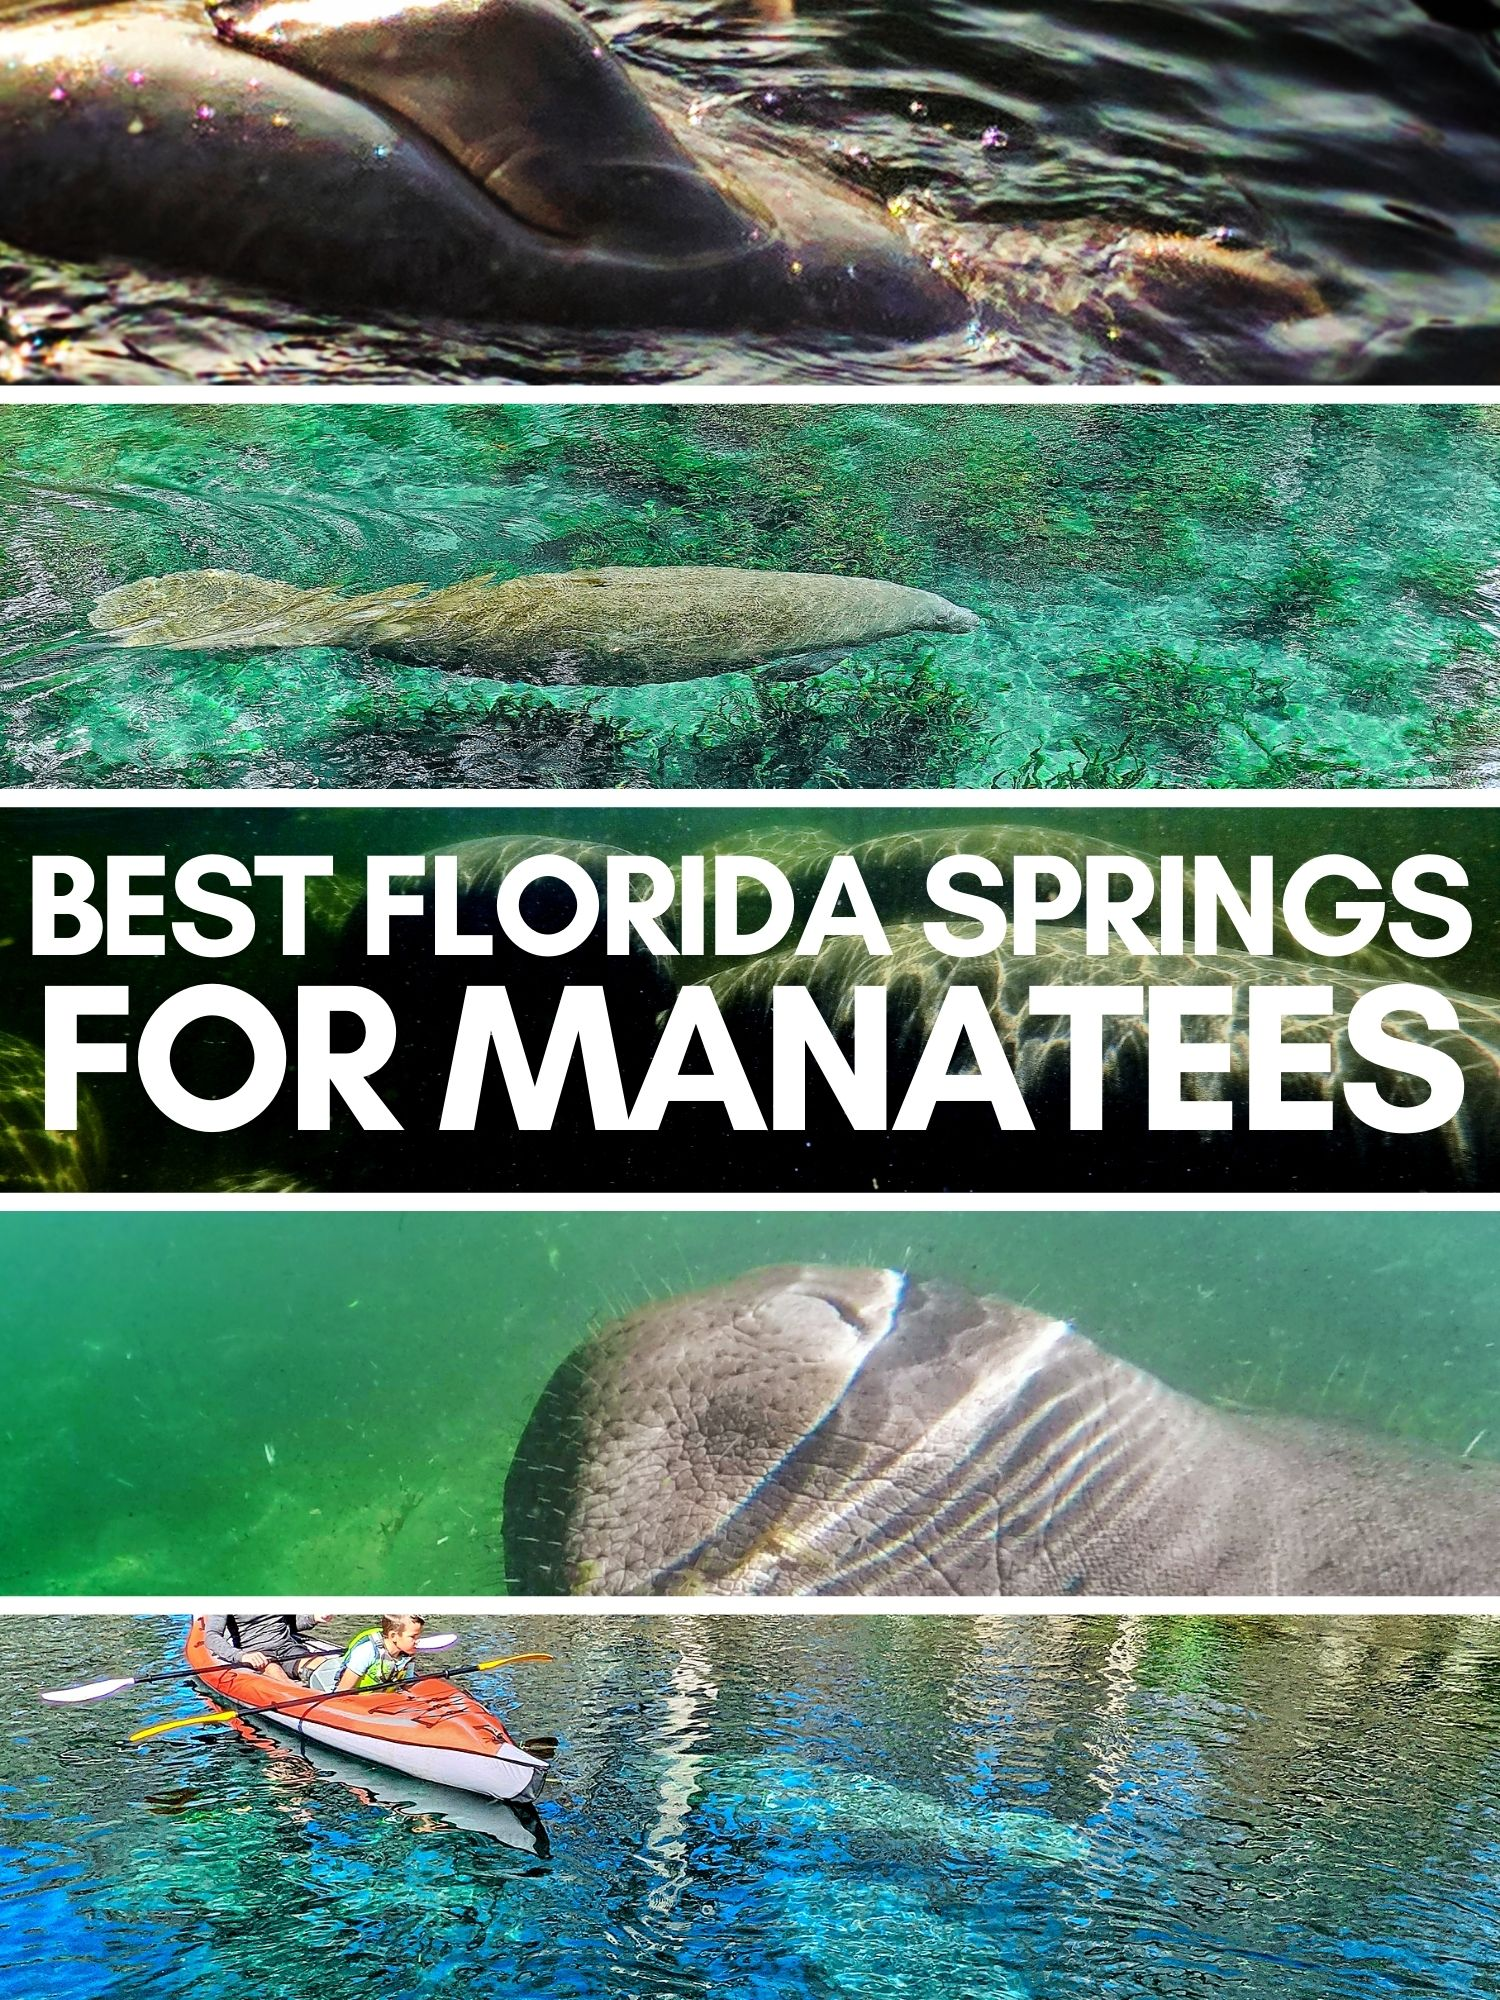 Manatees are a Florida bucket list experience. These are the best fresh water springs to see manatees up close and enjoy crystal clear waters any time of year.